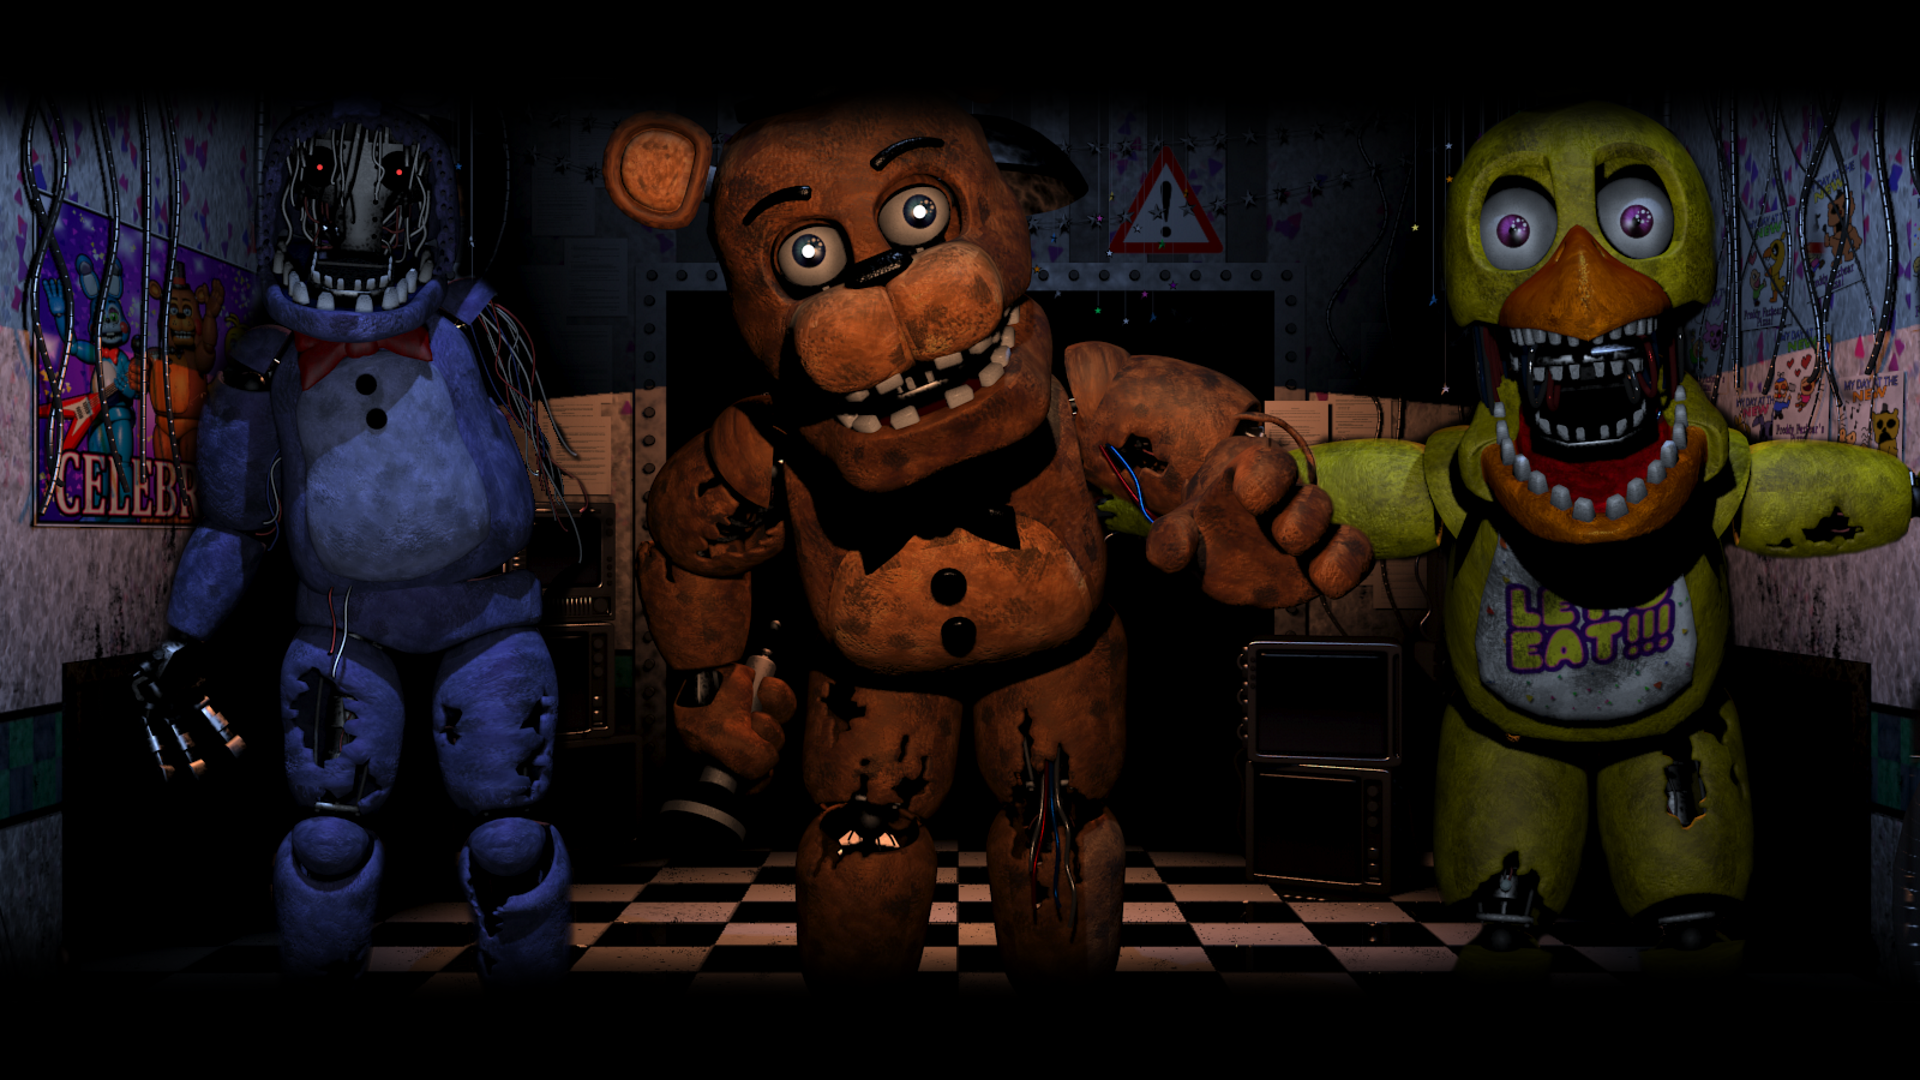 Old gang five nights at freddy s 2 wallpaper by bloodyhorrible on